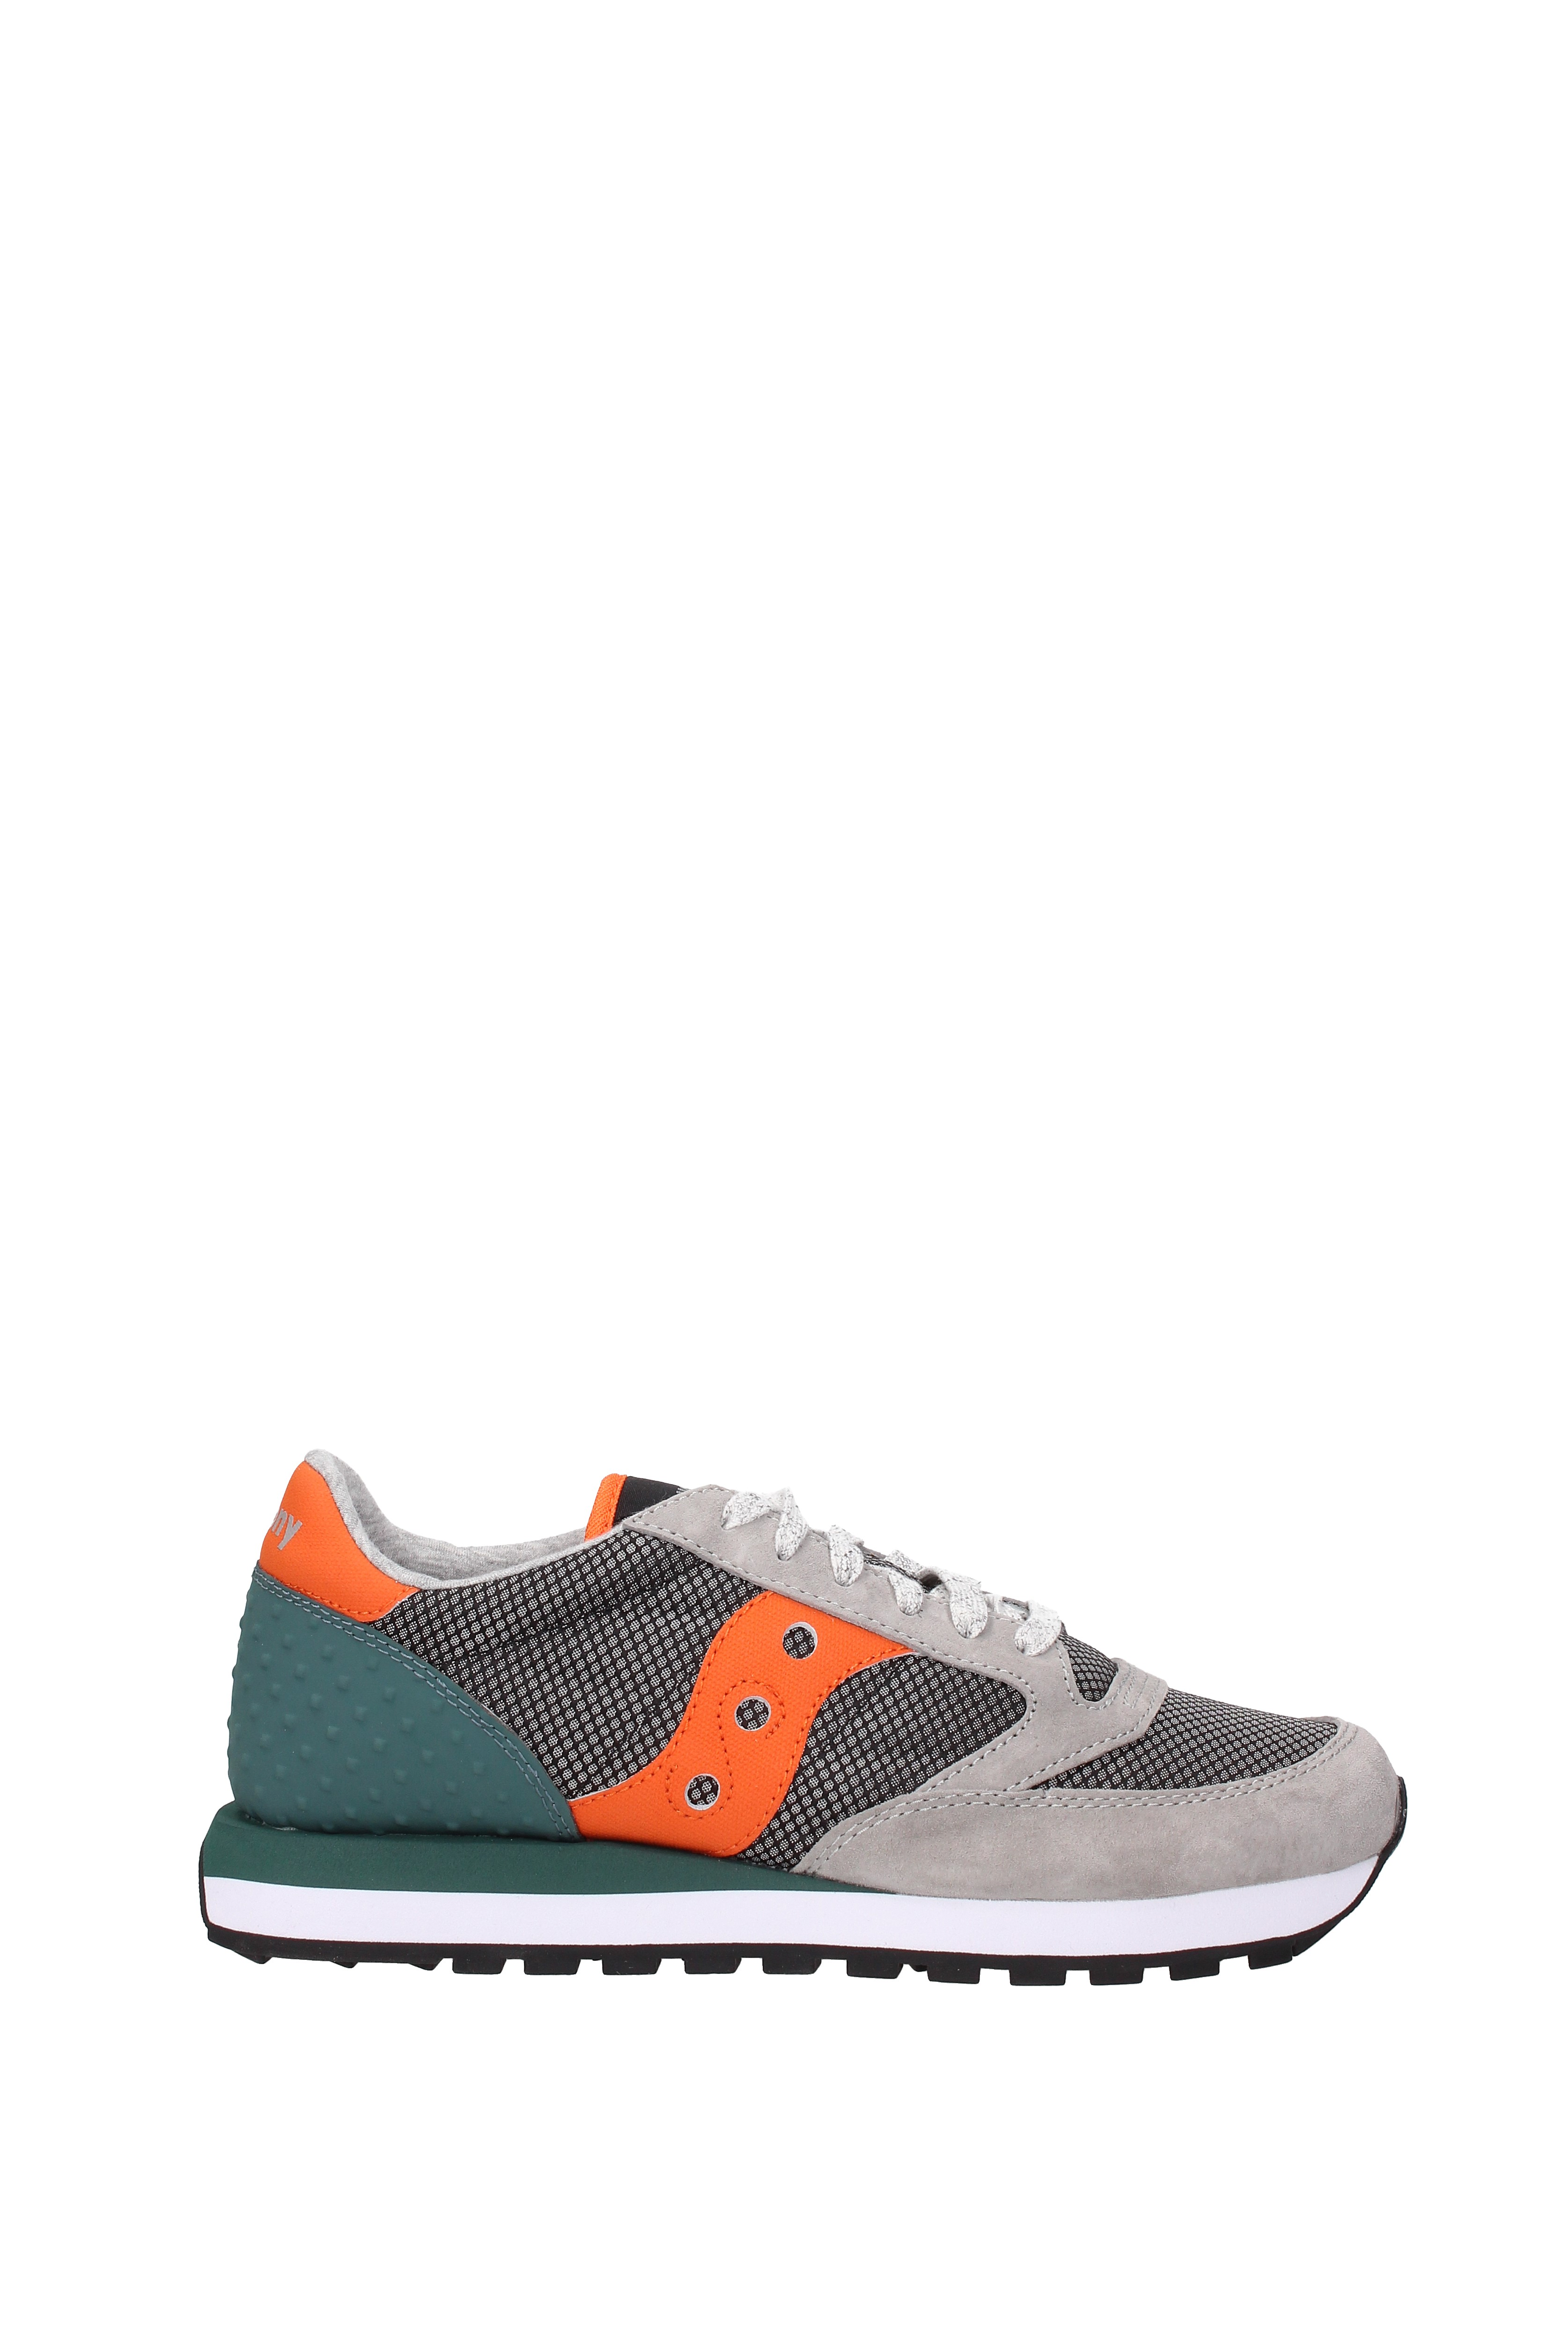 huge selection of 2031a 8a817 Sneakers Saucony jazz original Uomo Tessuto 70331 -  mainstreetblytheville.org